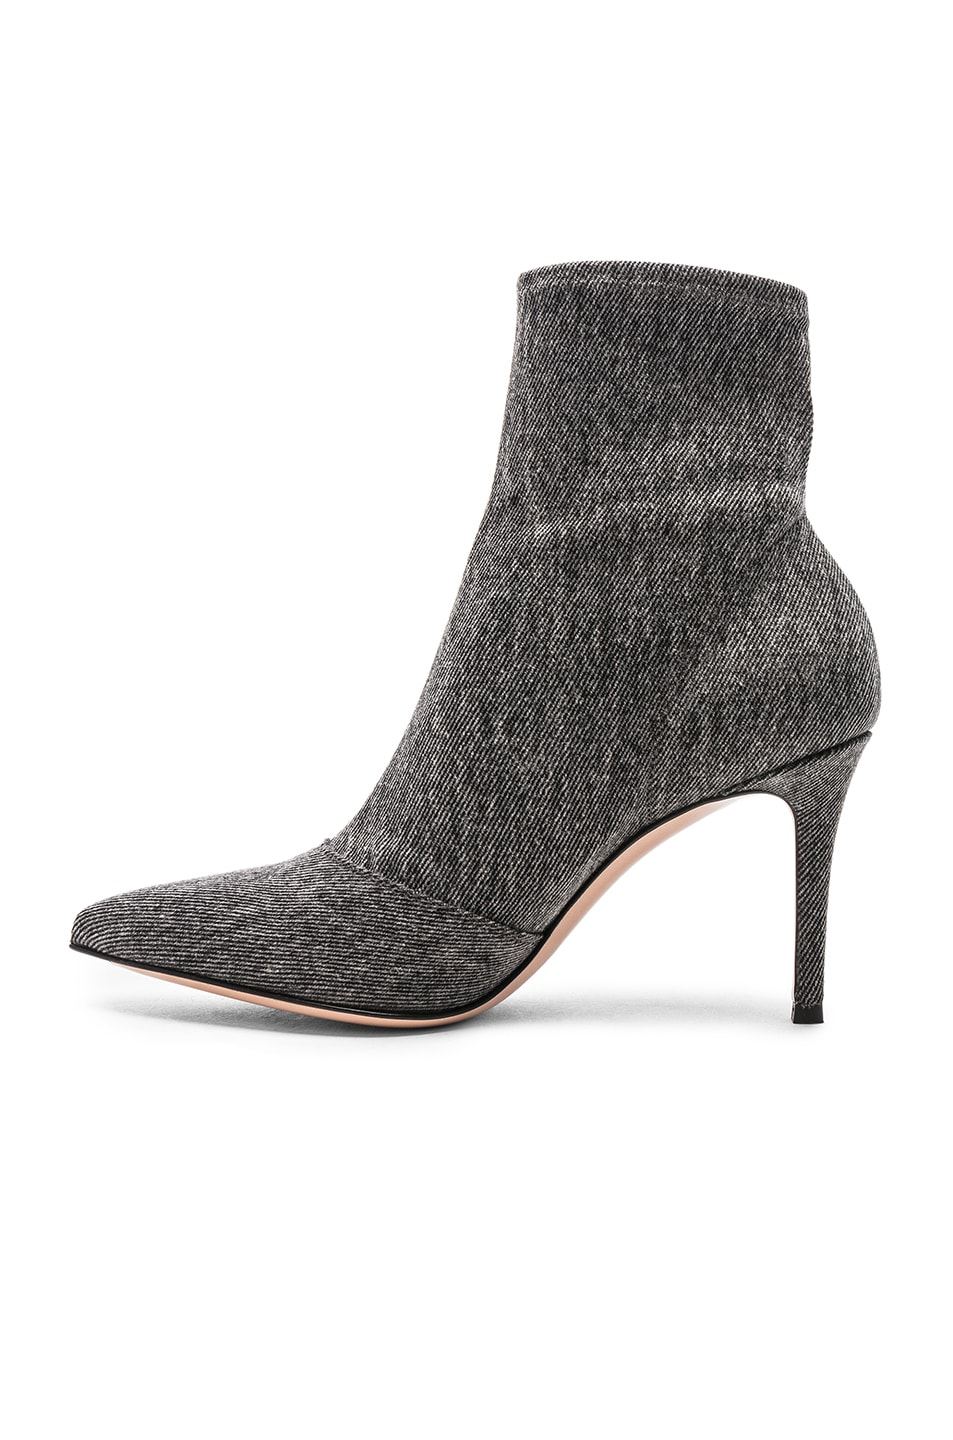 Image 5 of Gianvito Rossi Denim Stretch Ankle Booties in Black